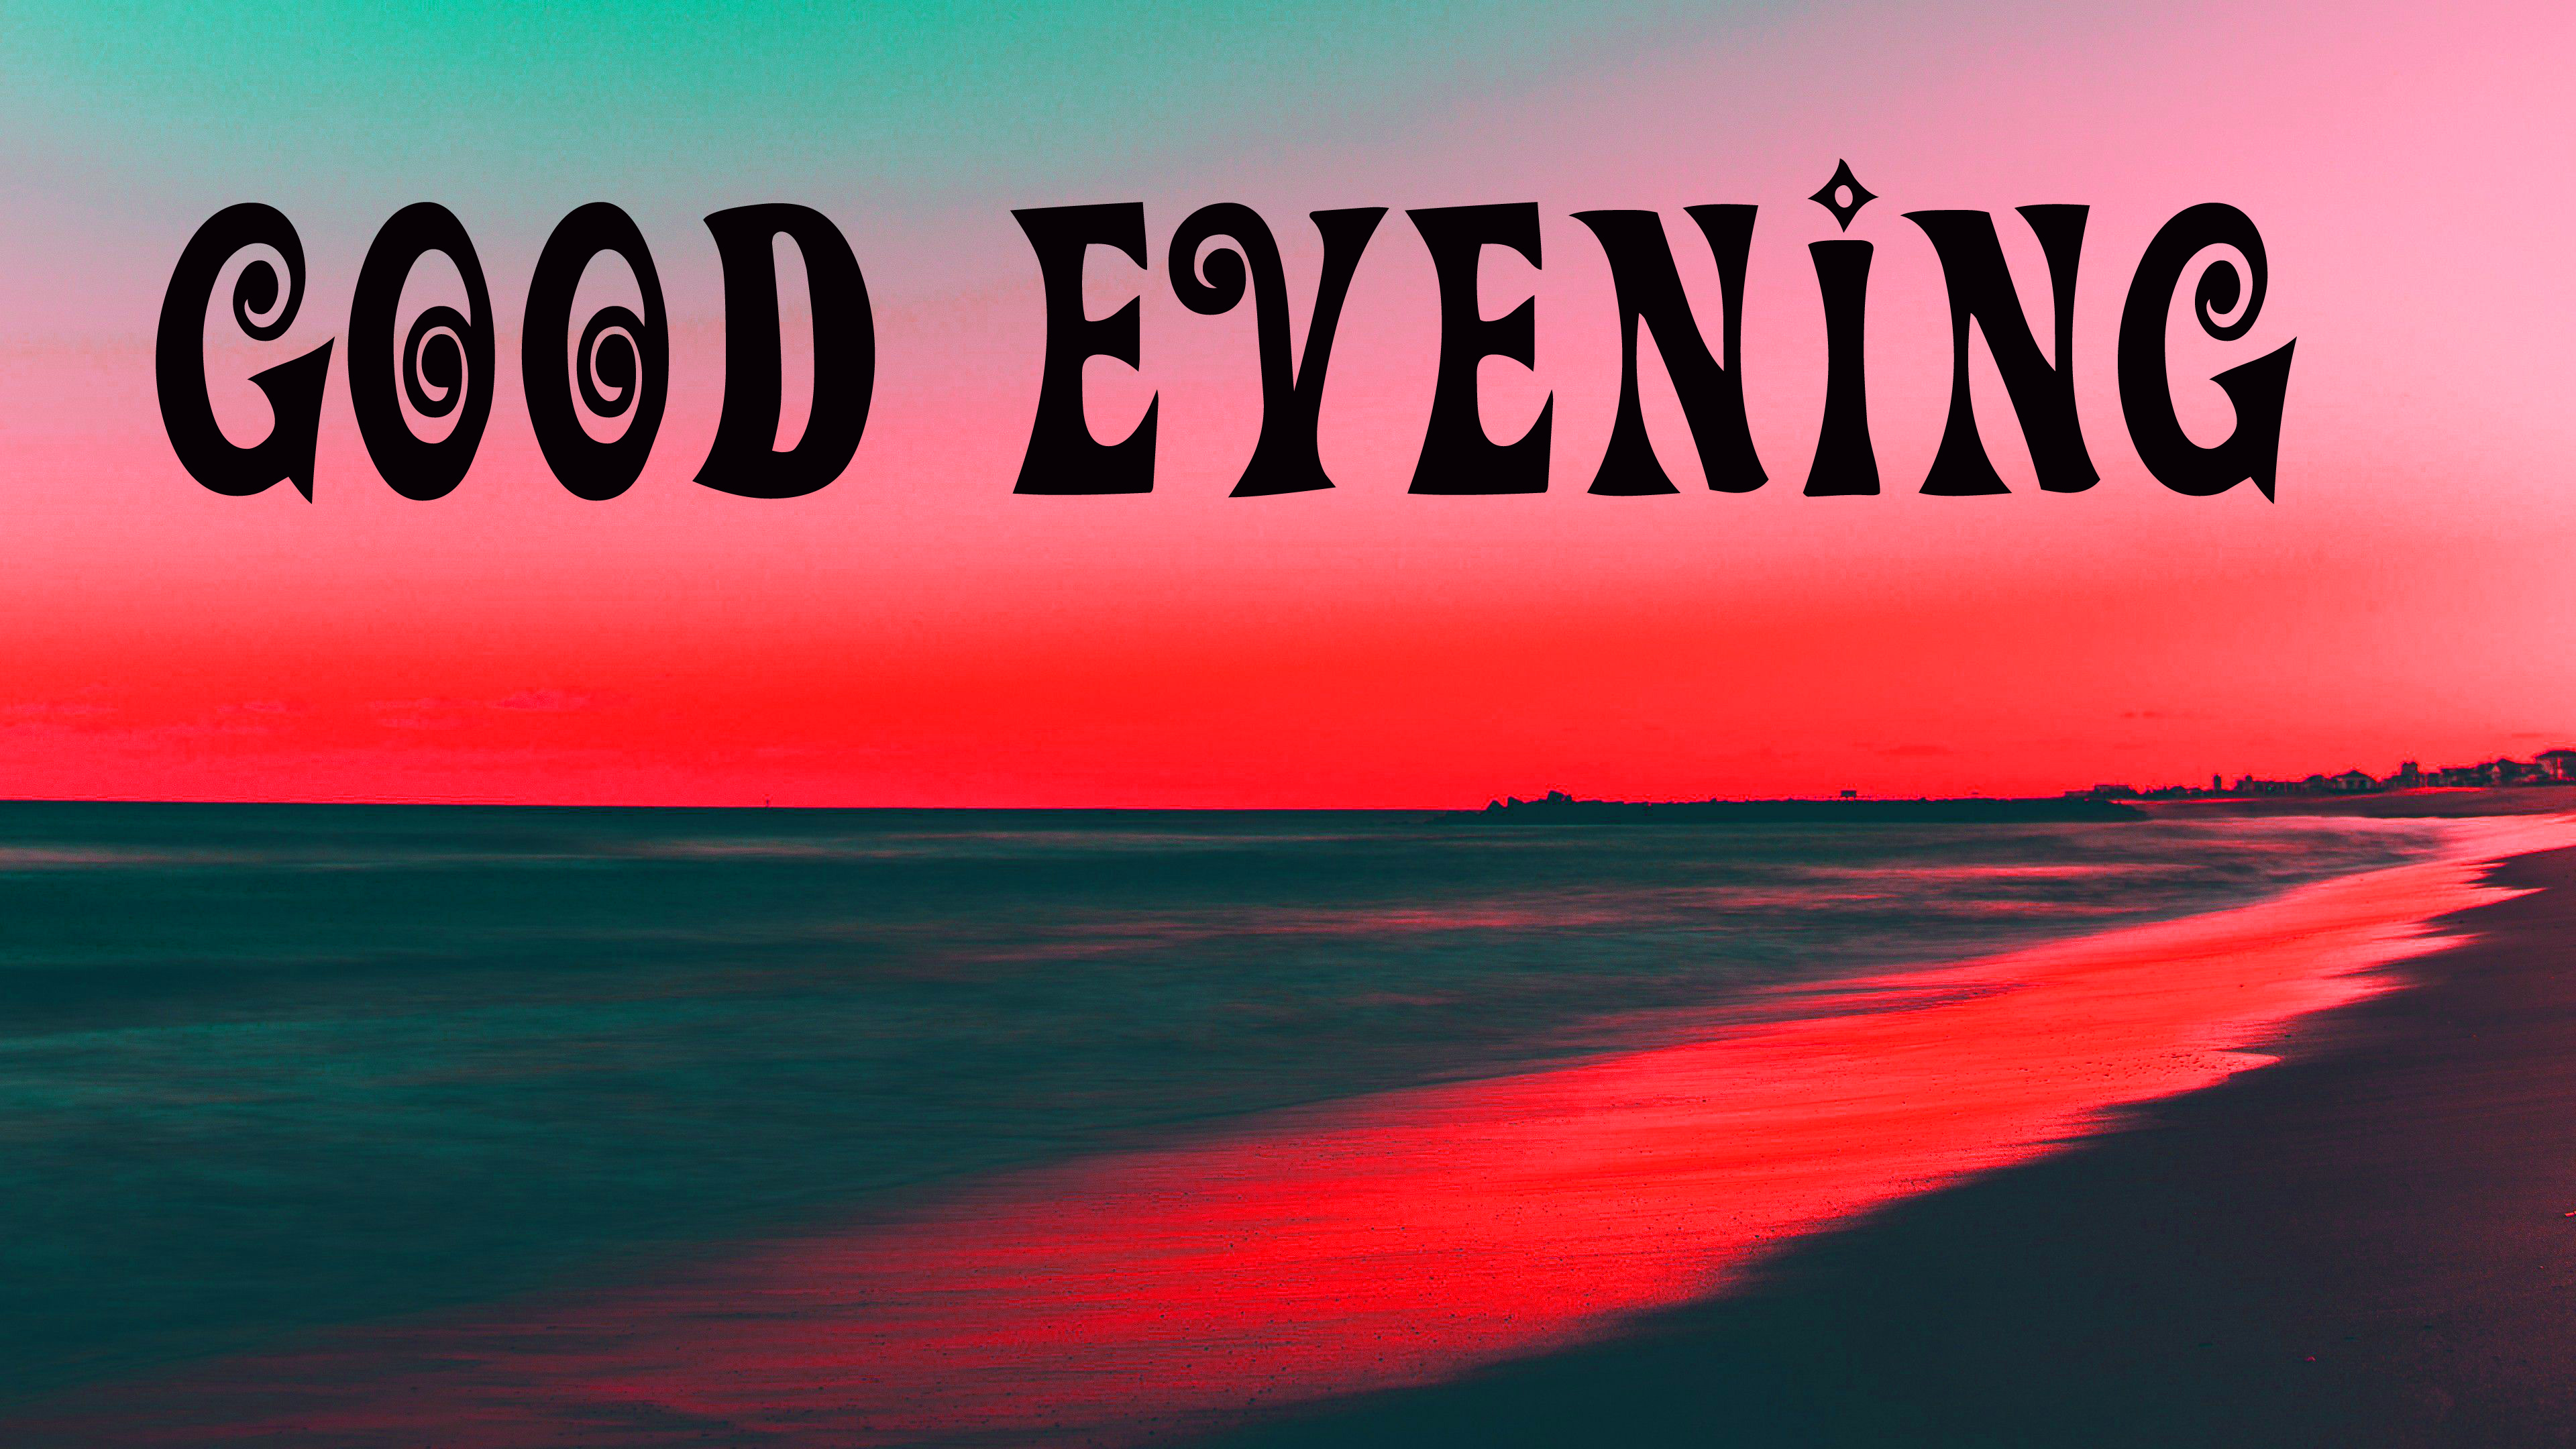 Good Evening Image Wallpaper Pics Download